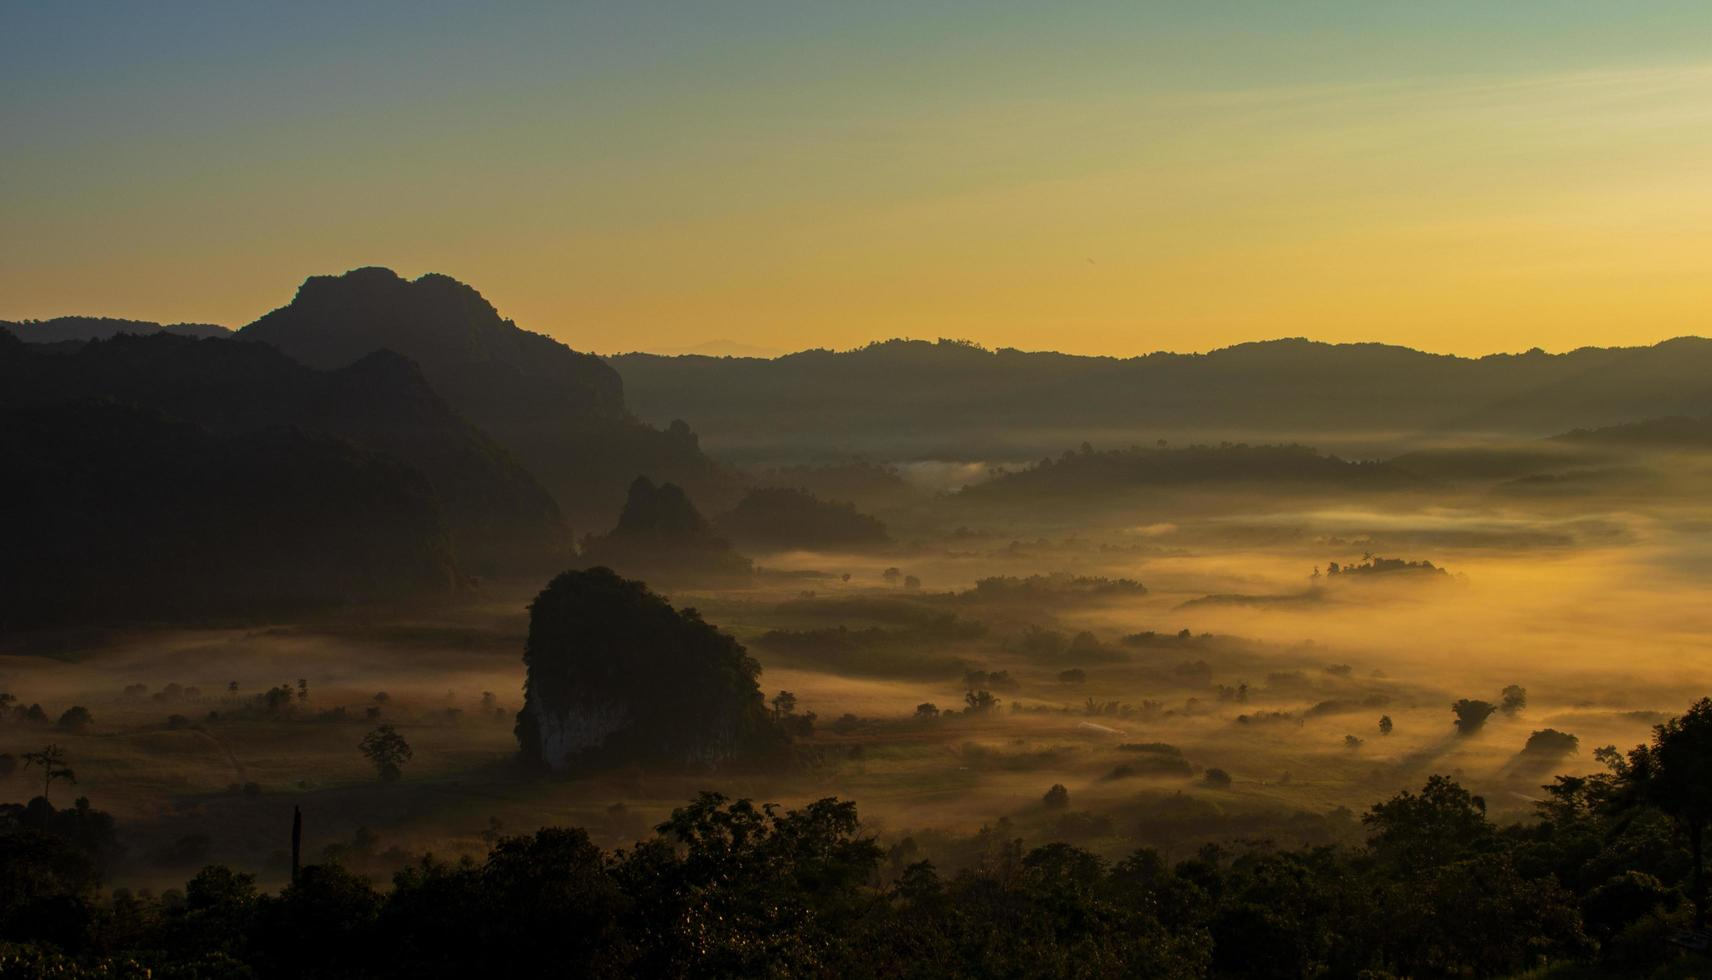 Golden hour over mountains and fog photo